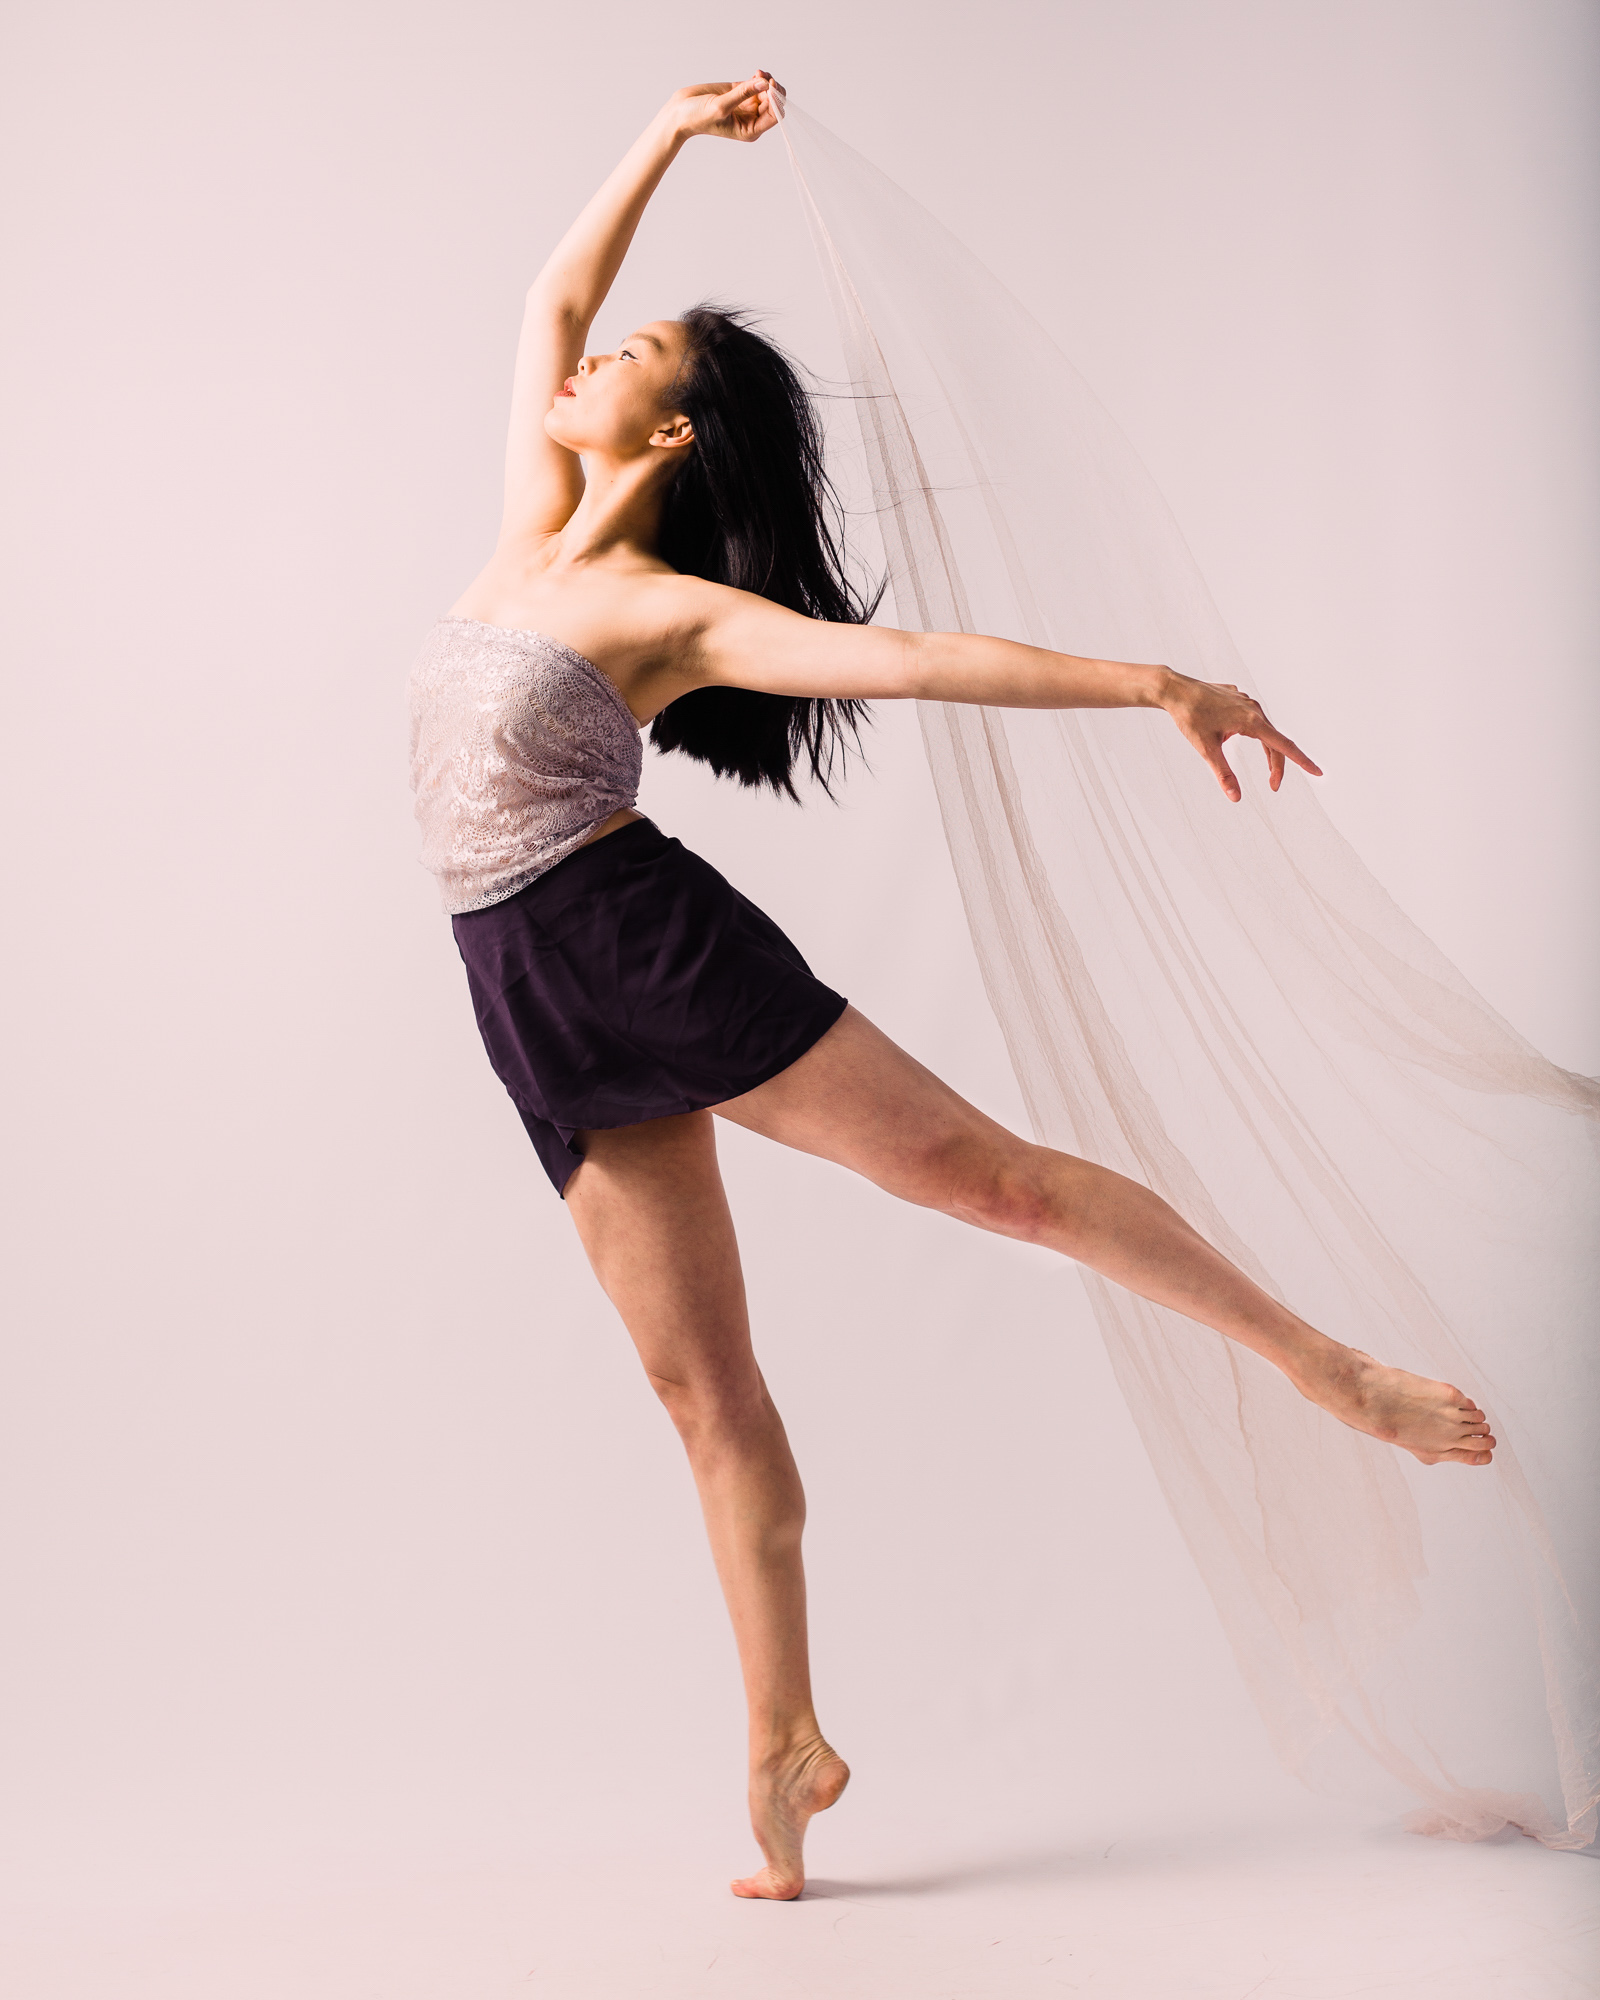 ahowton_AshleyBallet_0518__009_large